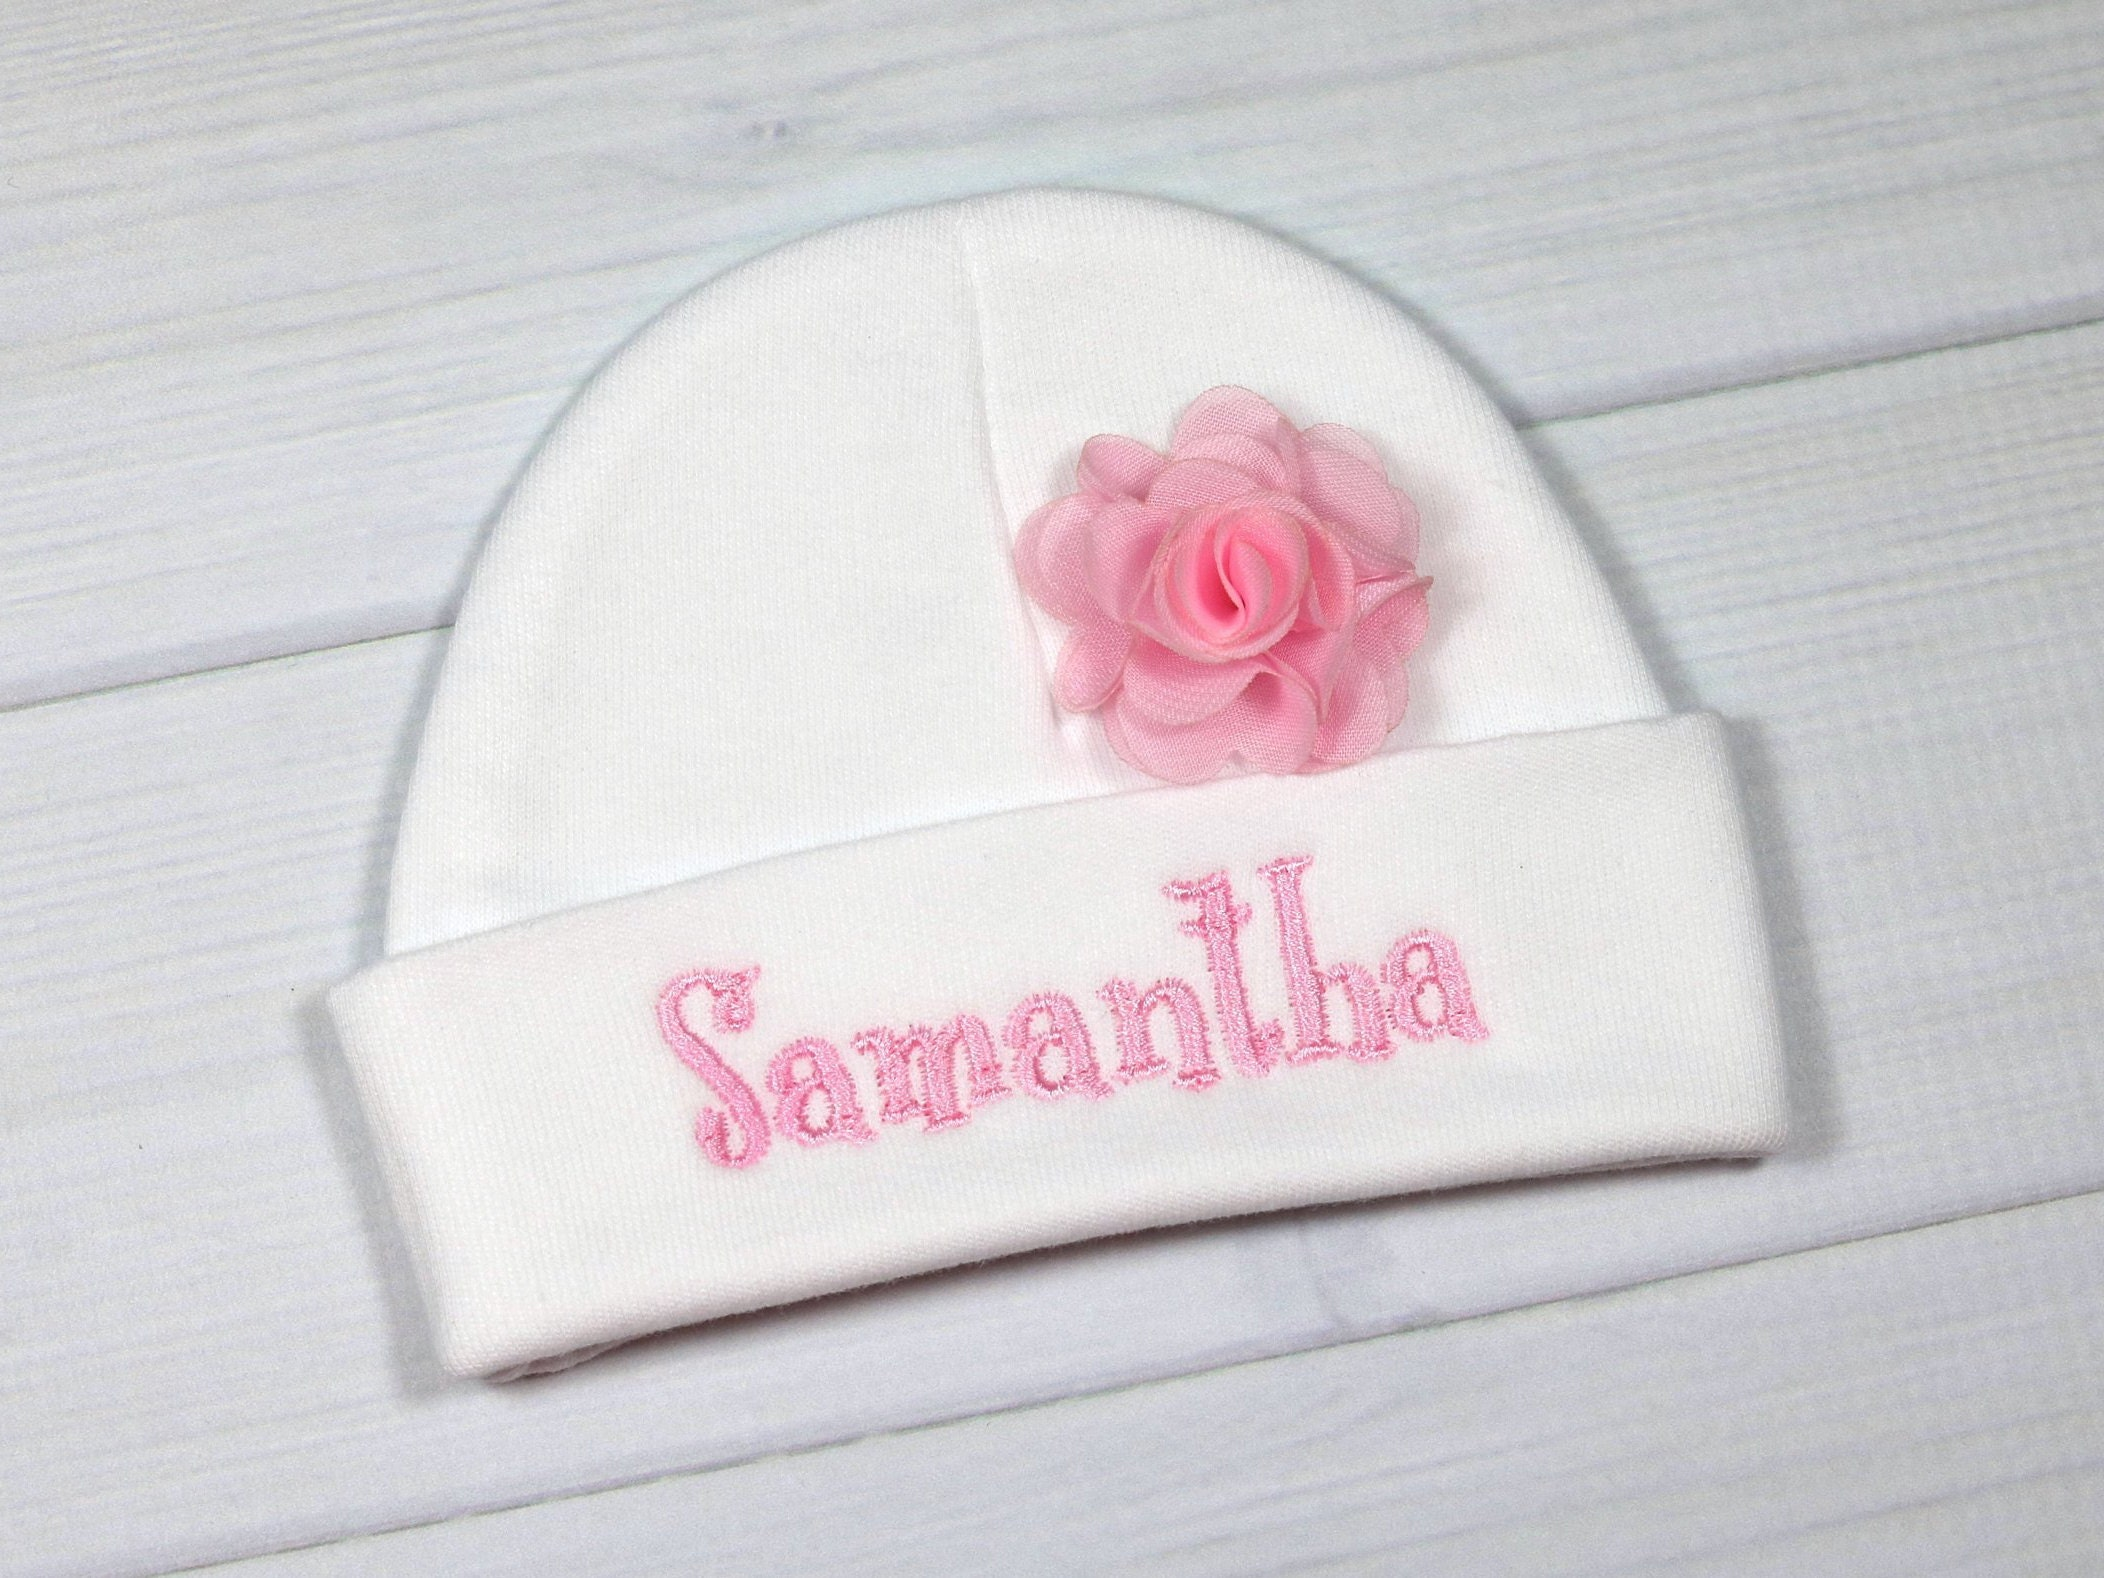 8c1632ca0 Personalized baby girl hat with 1.5 chiffon flower - micro preemie ...